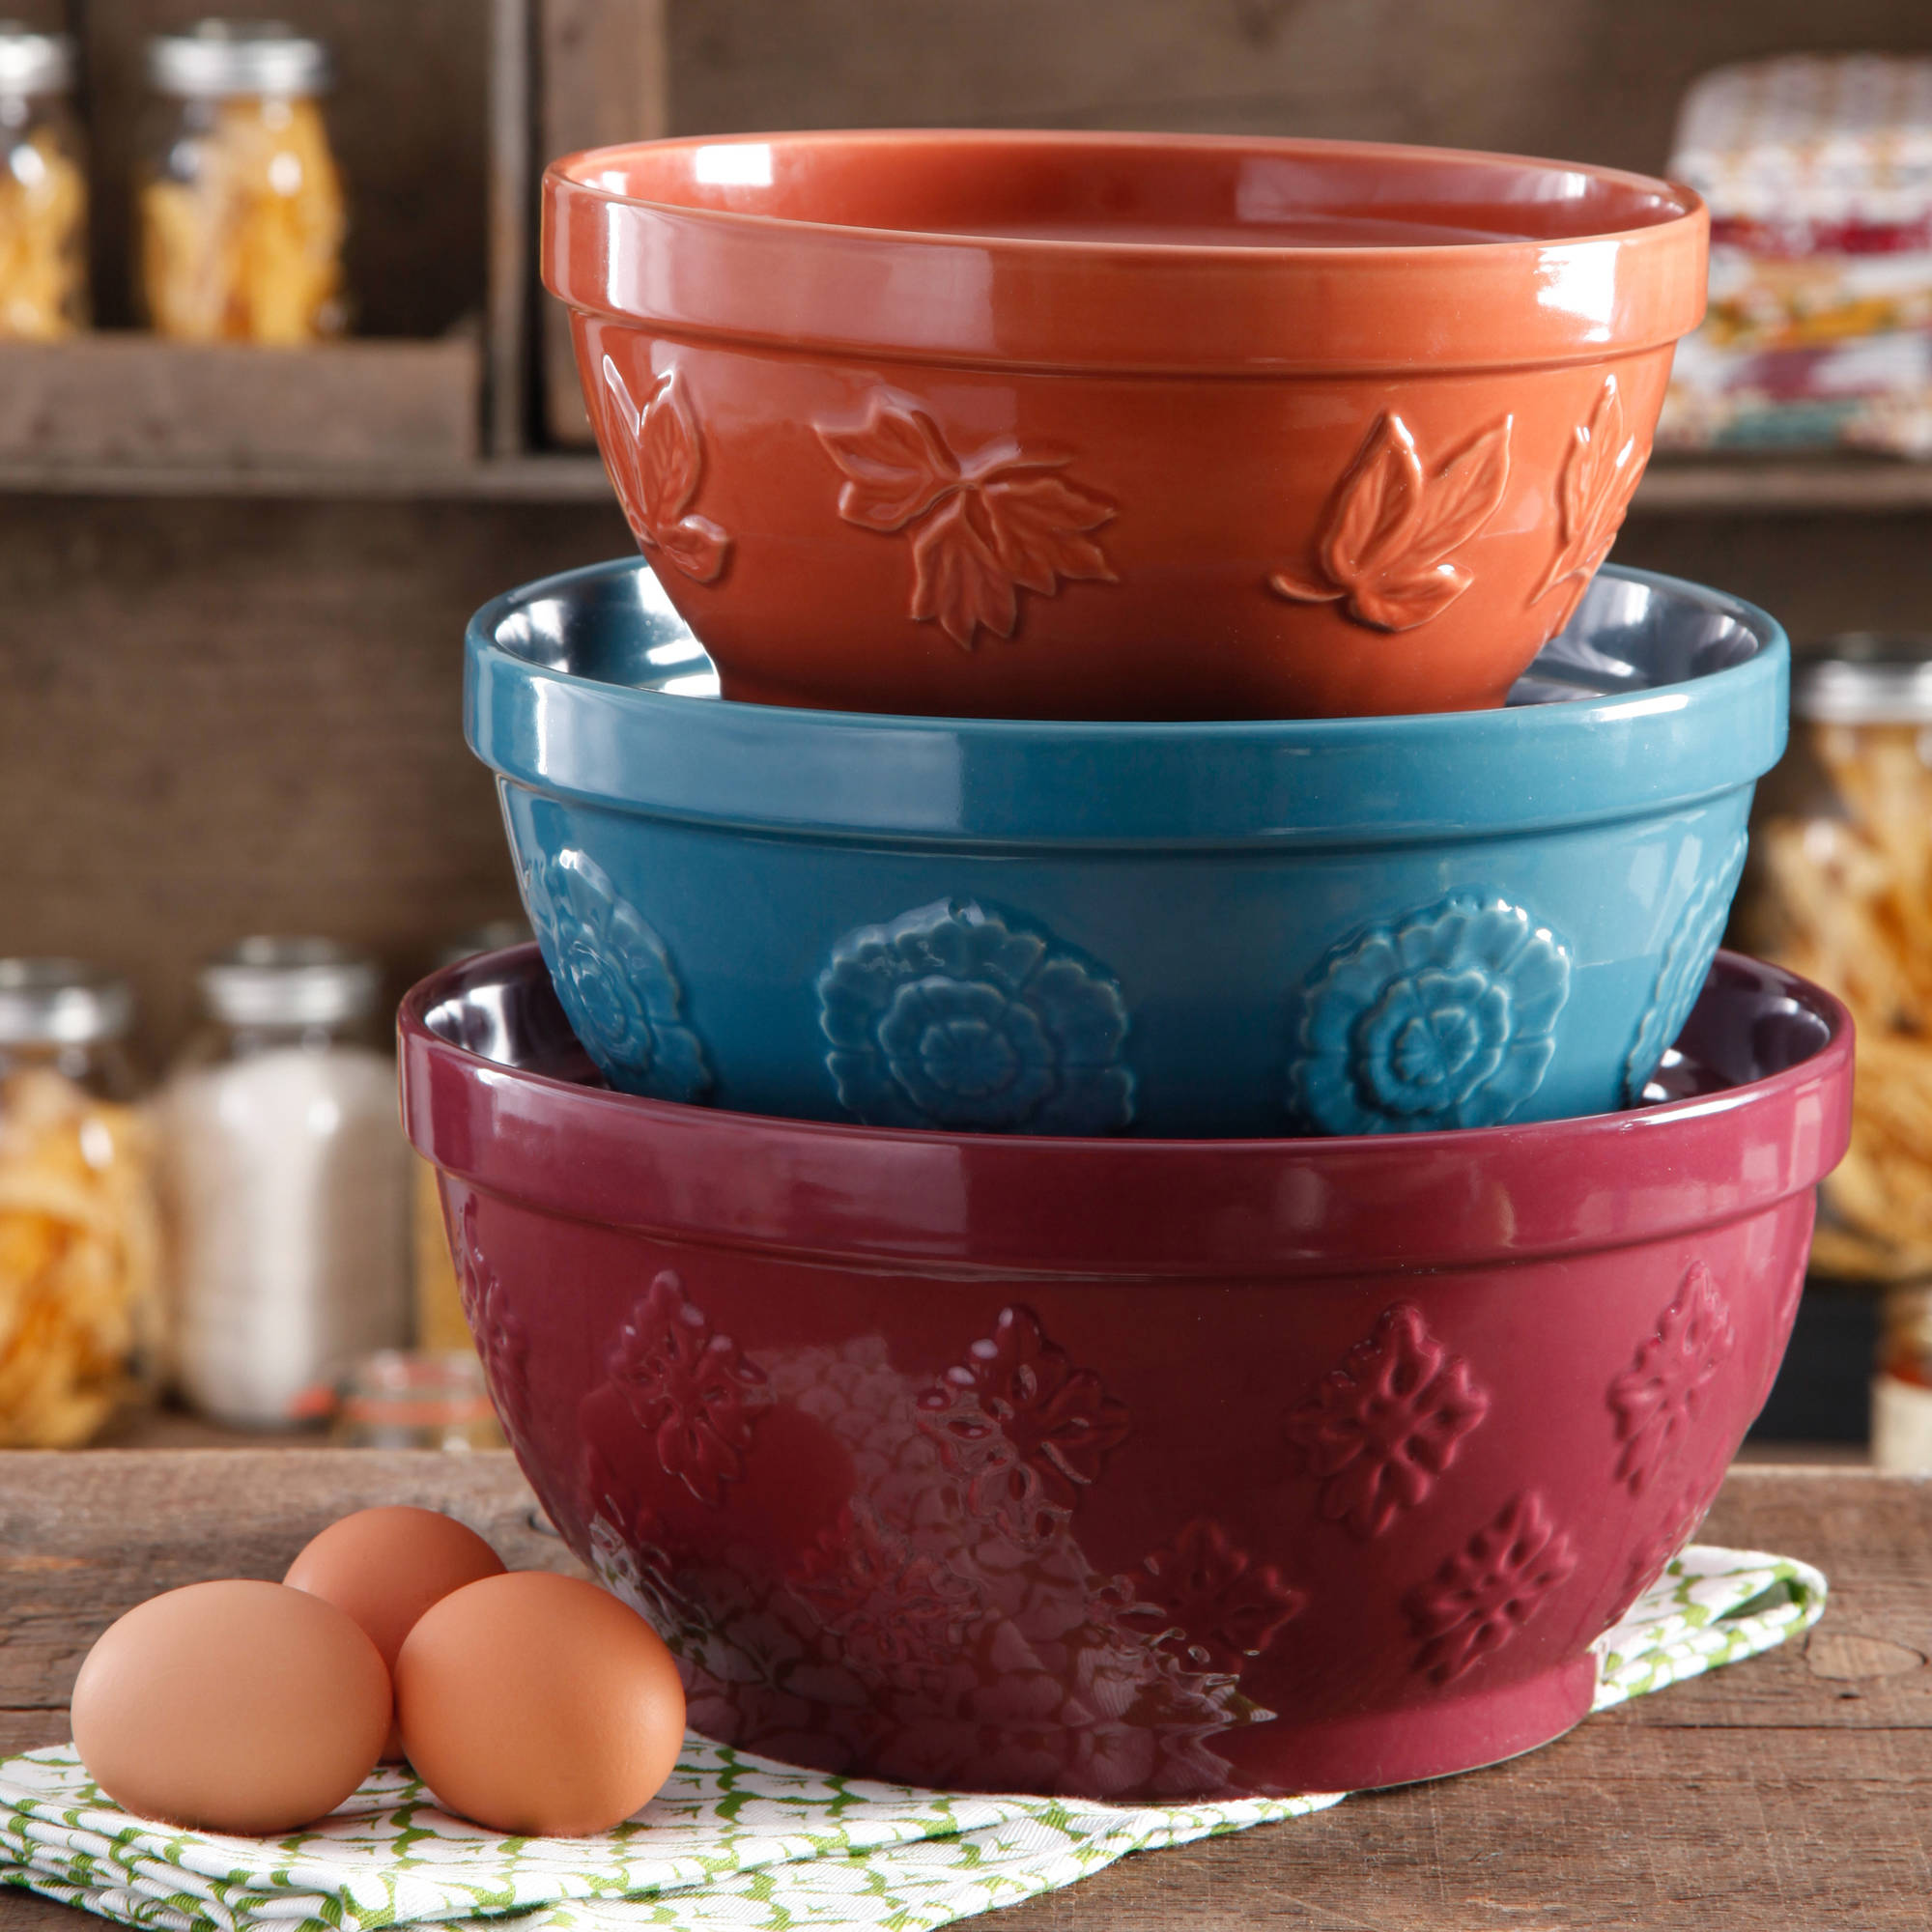 The Pioneer Woman Cornucopia Mixing Bowl Set, 3-Piece